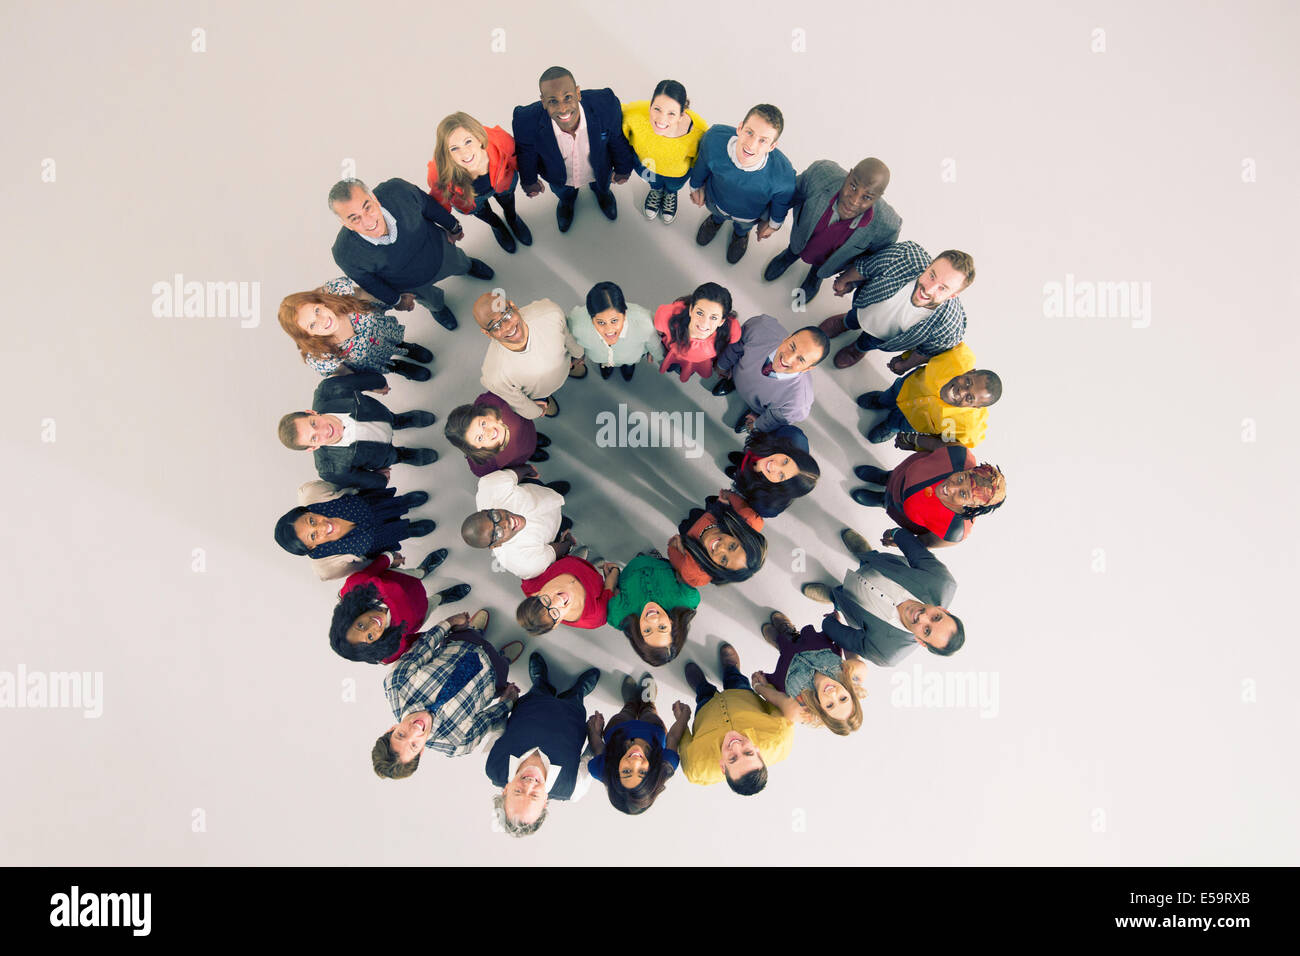 Portrait of diverse crowd in huddle - Stock Image